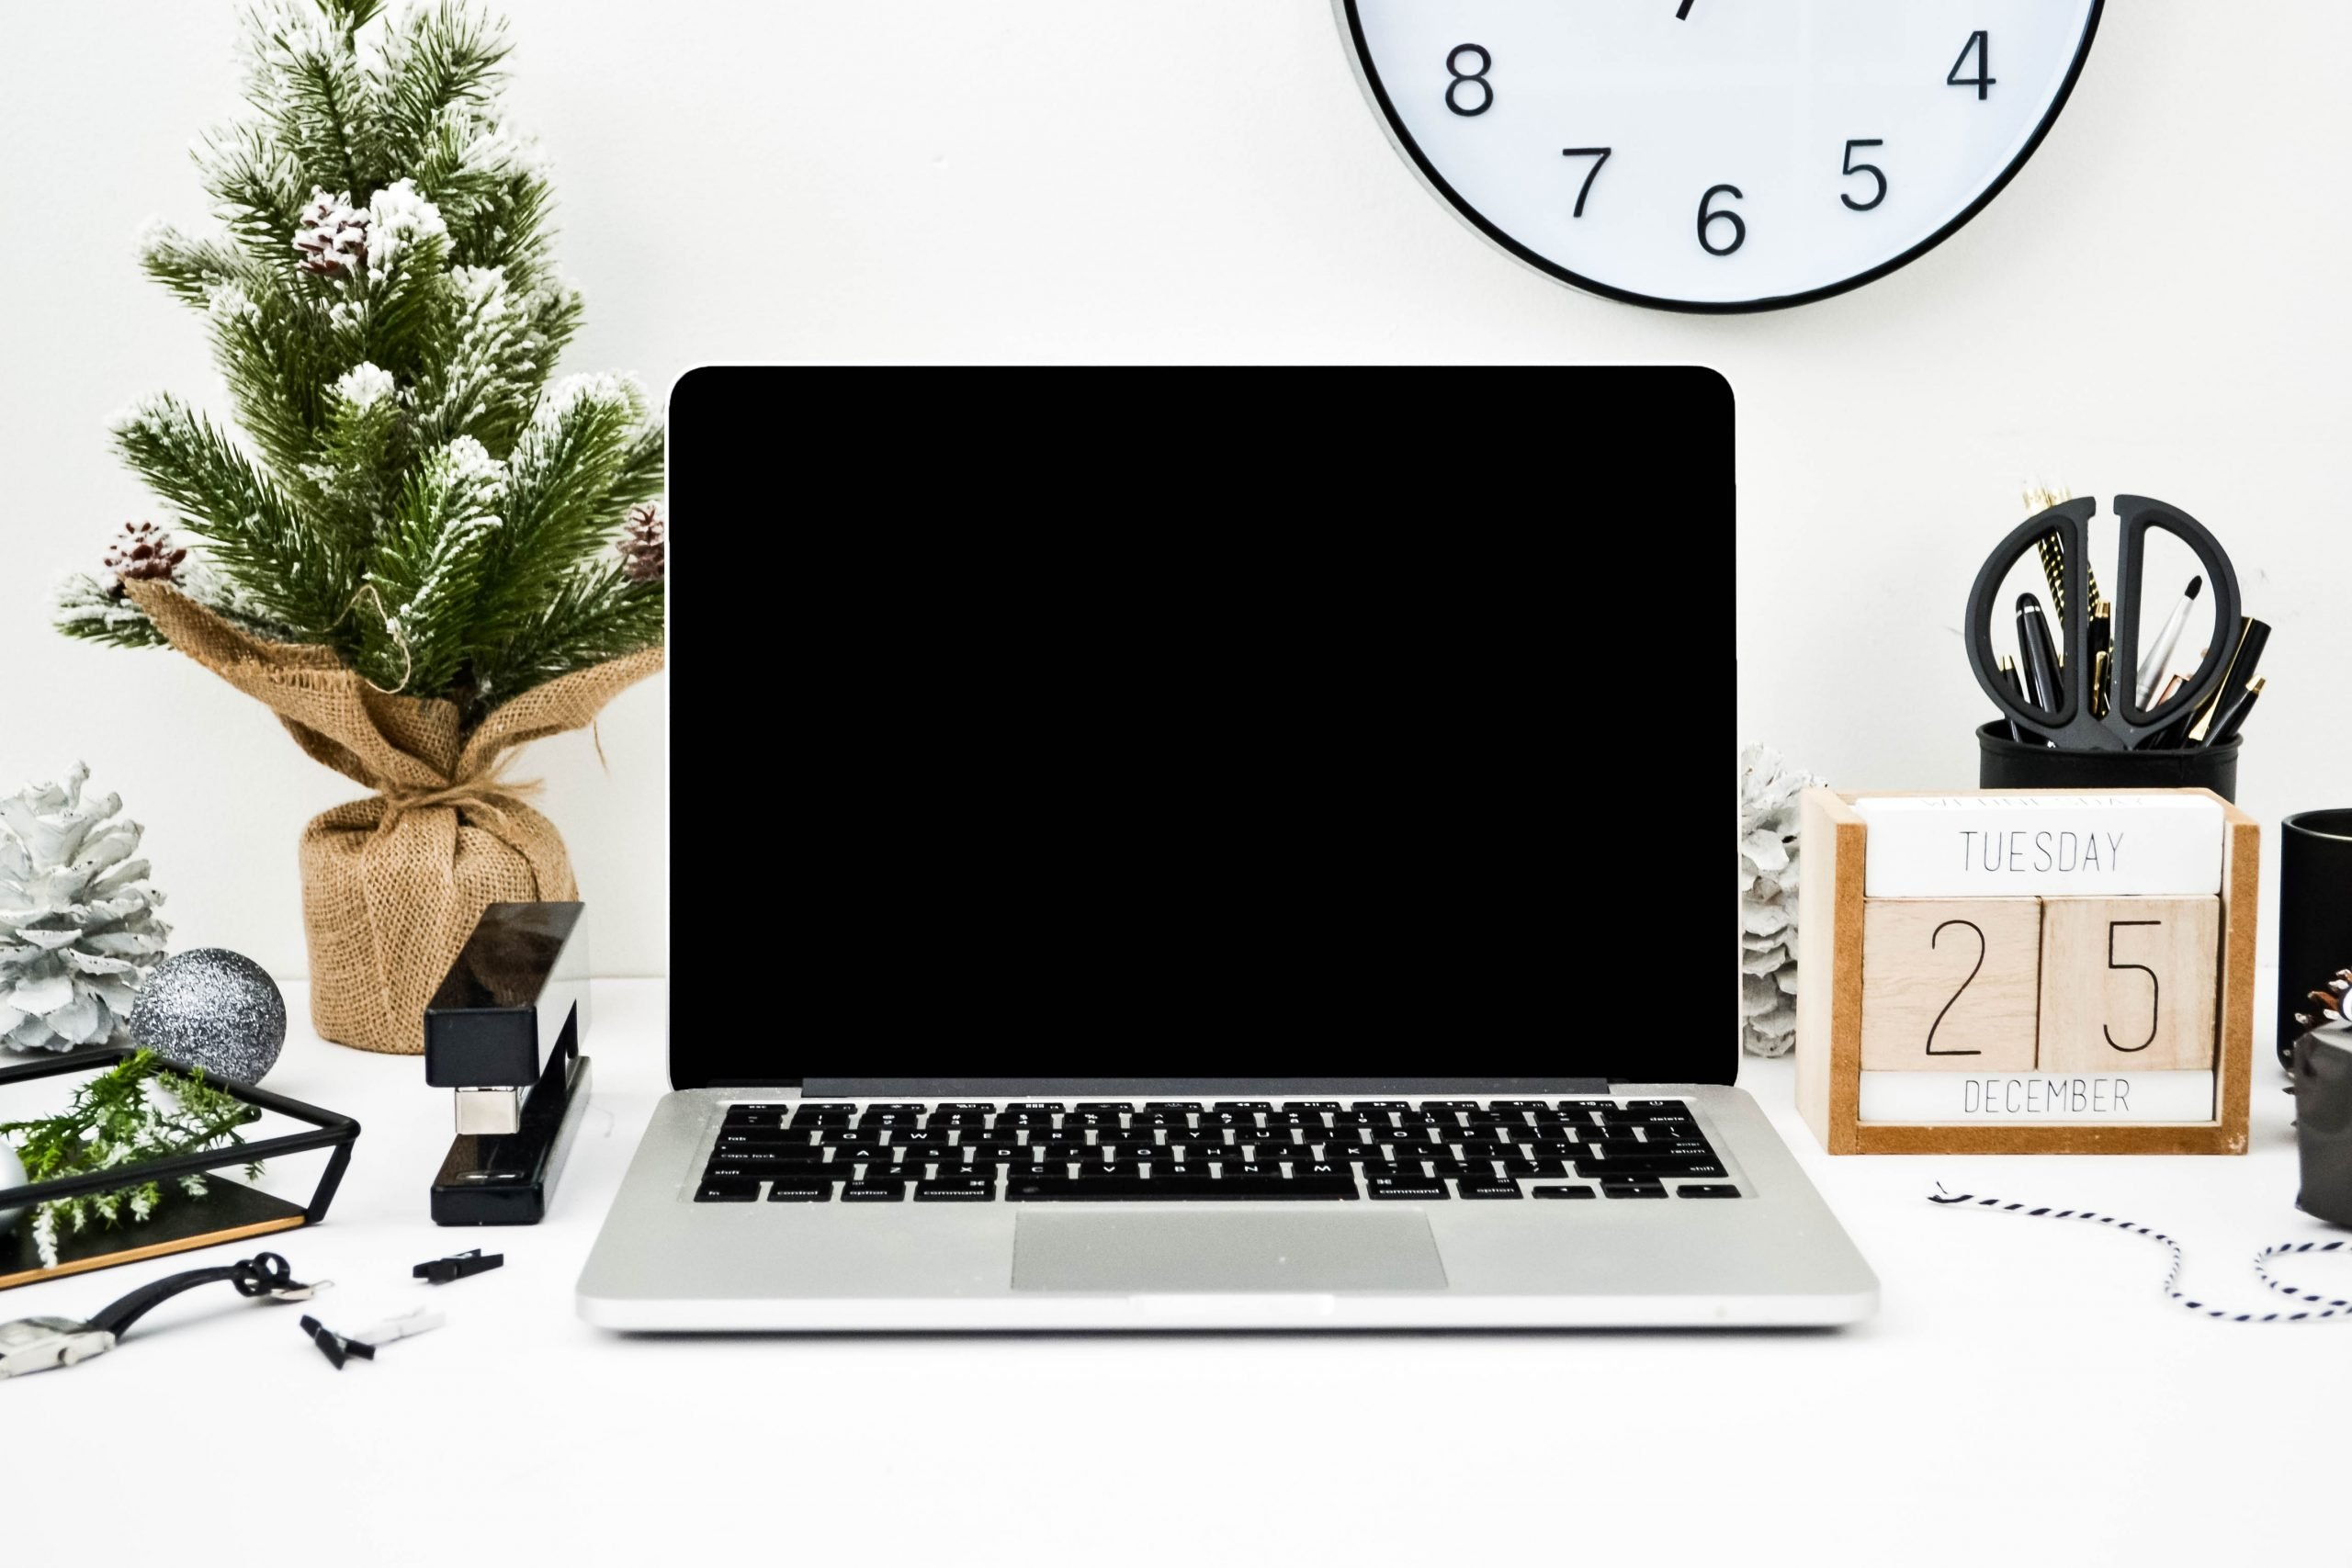 A month in review + a list of resources for freelance writers and bloggers to make money blogging, get paid to write, and grow their freelance business.